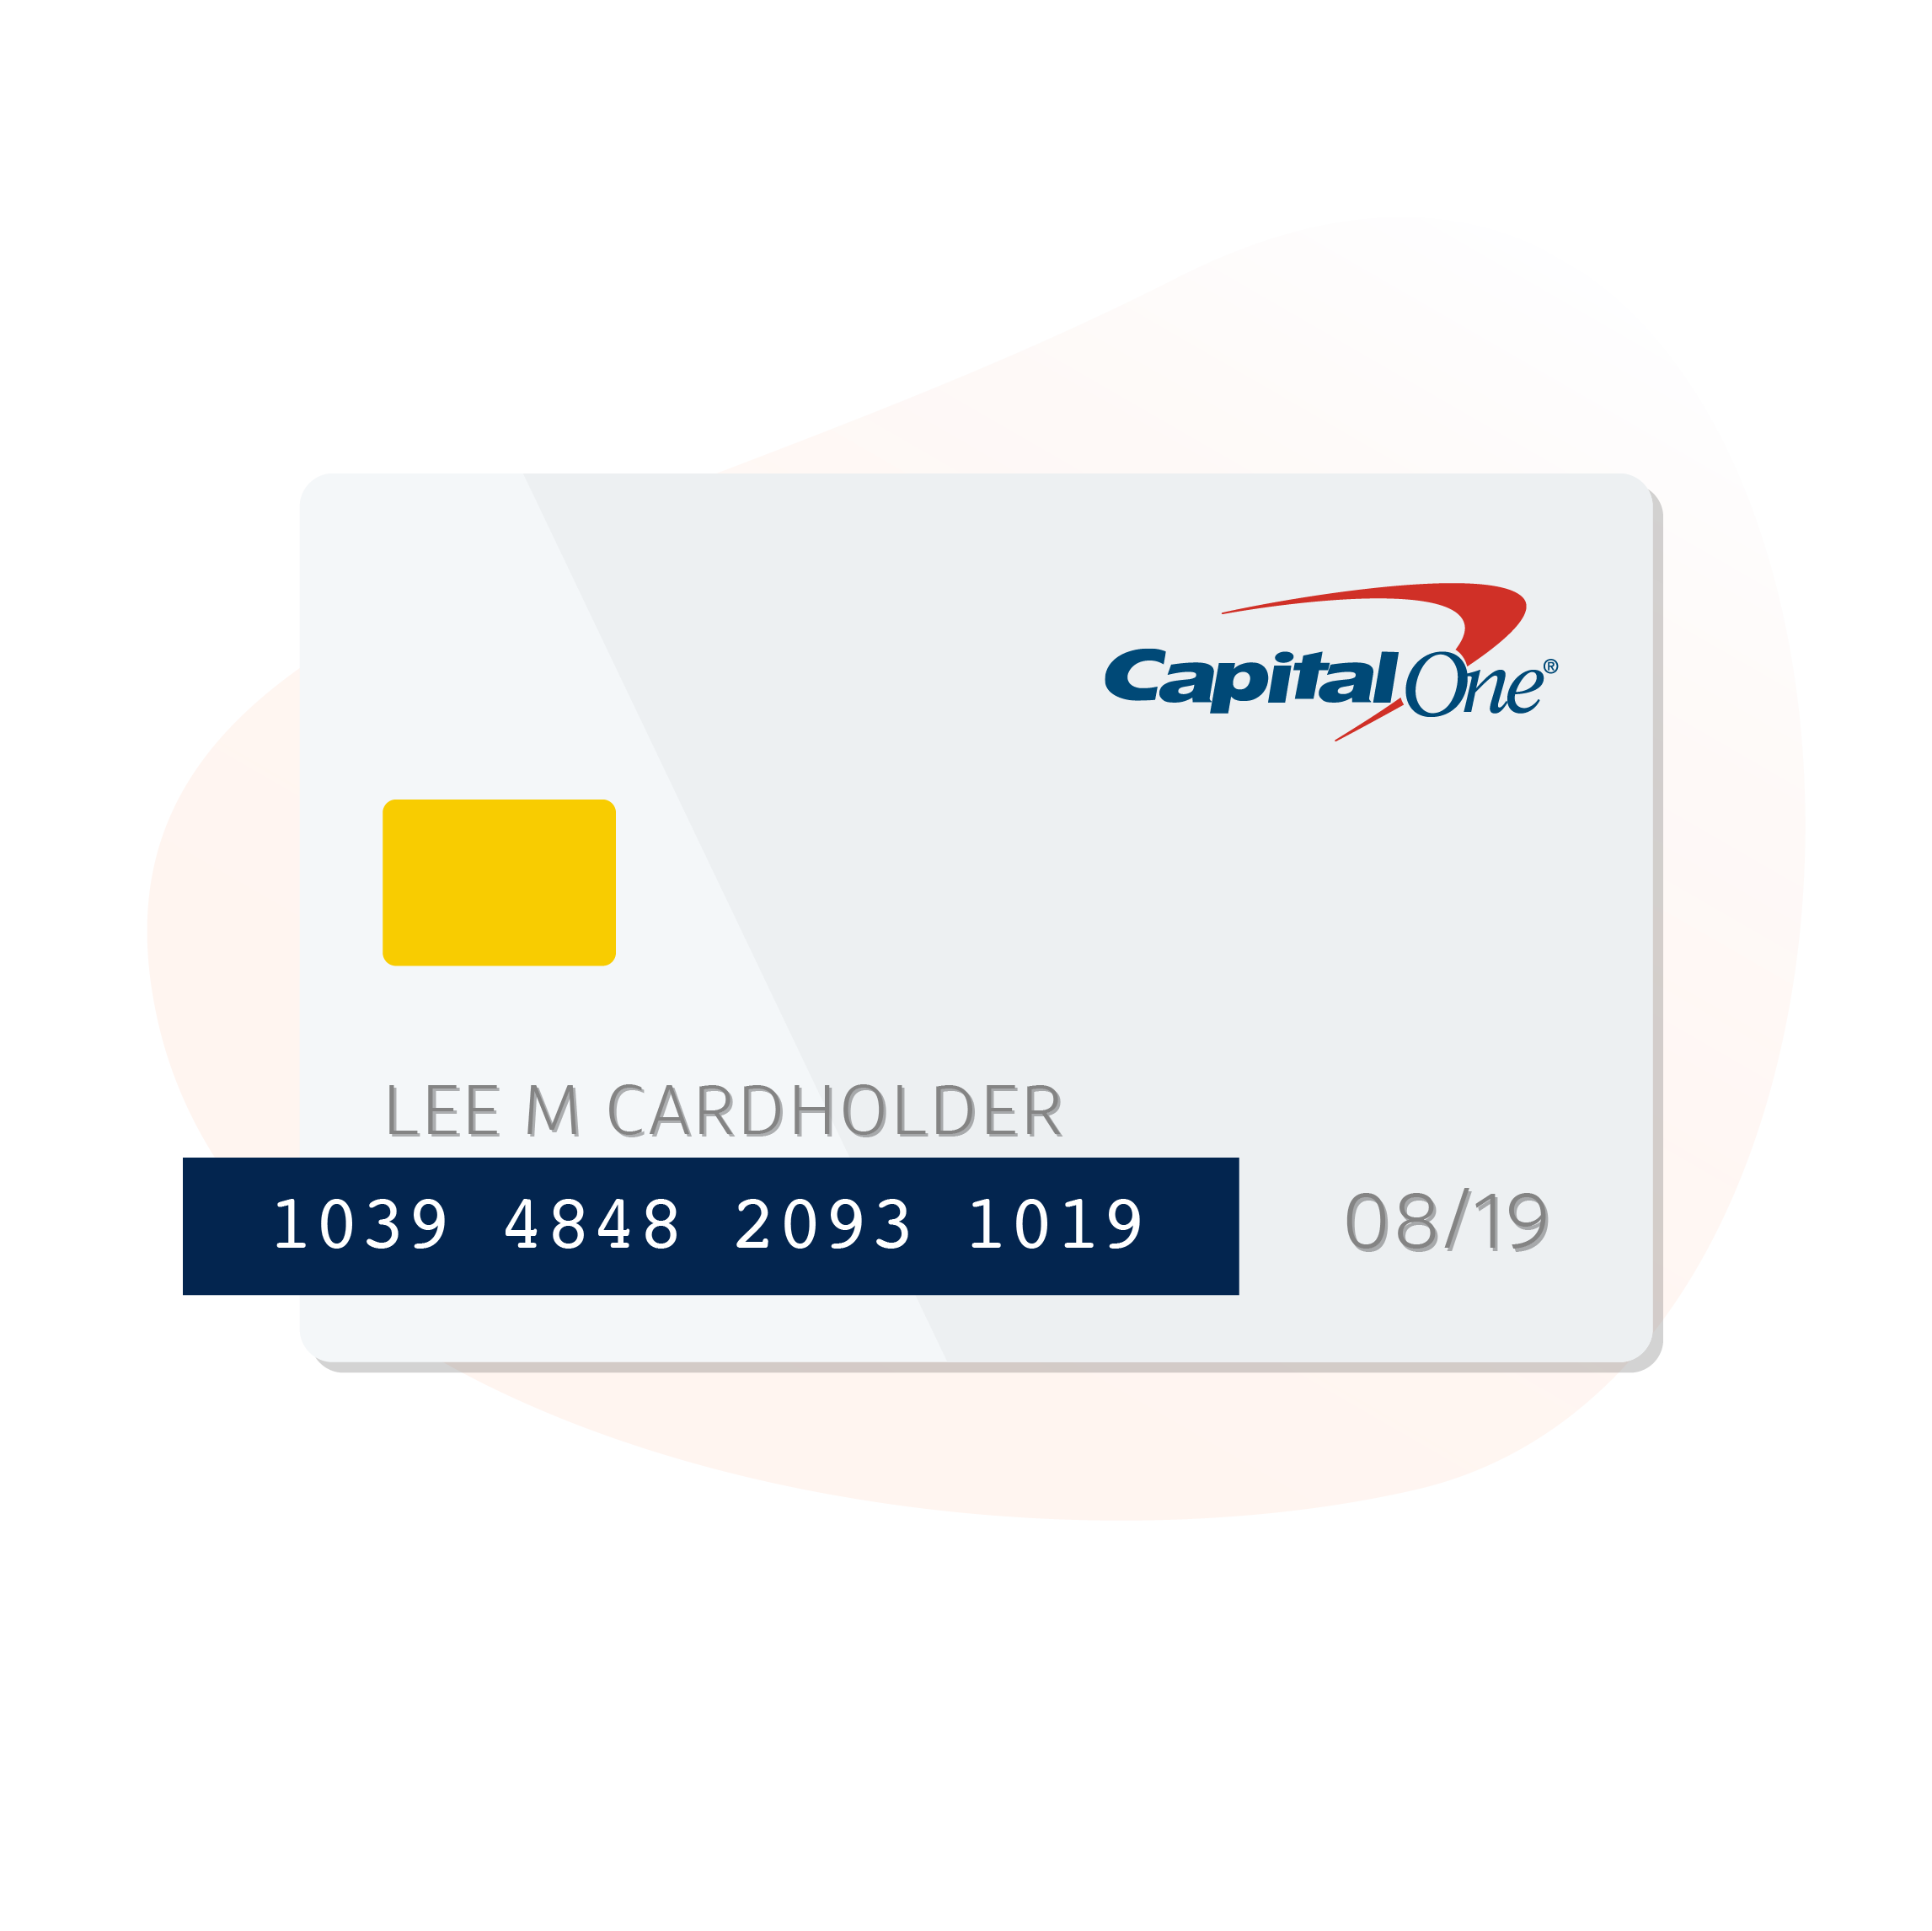 capital one credit card customer service number uk